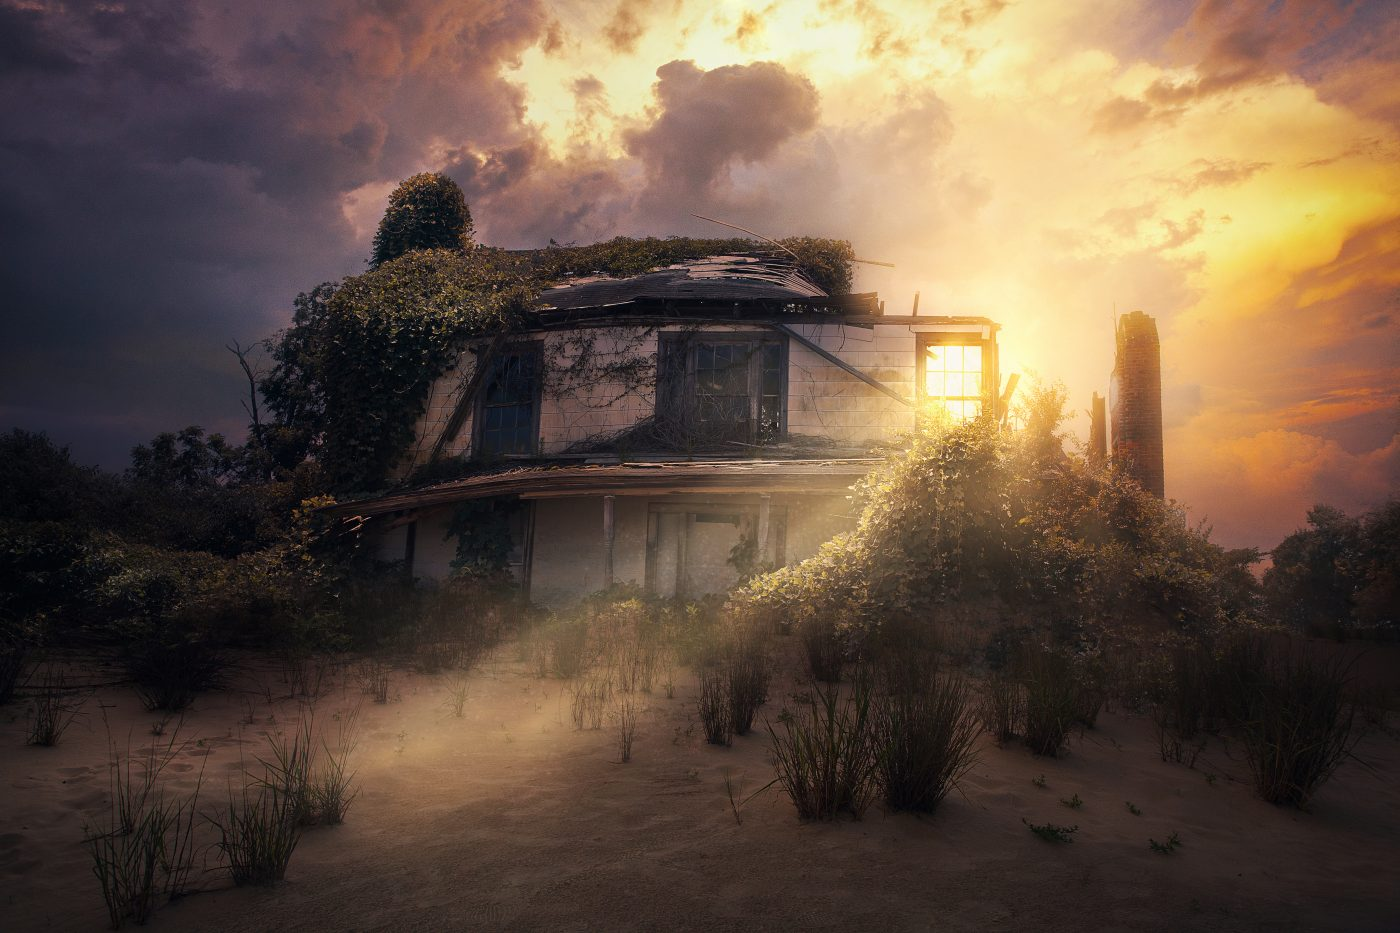 Old destroyed house with the sunlight shining through the window